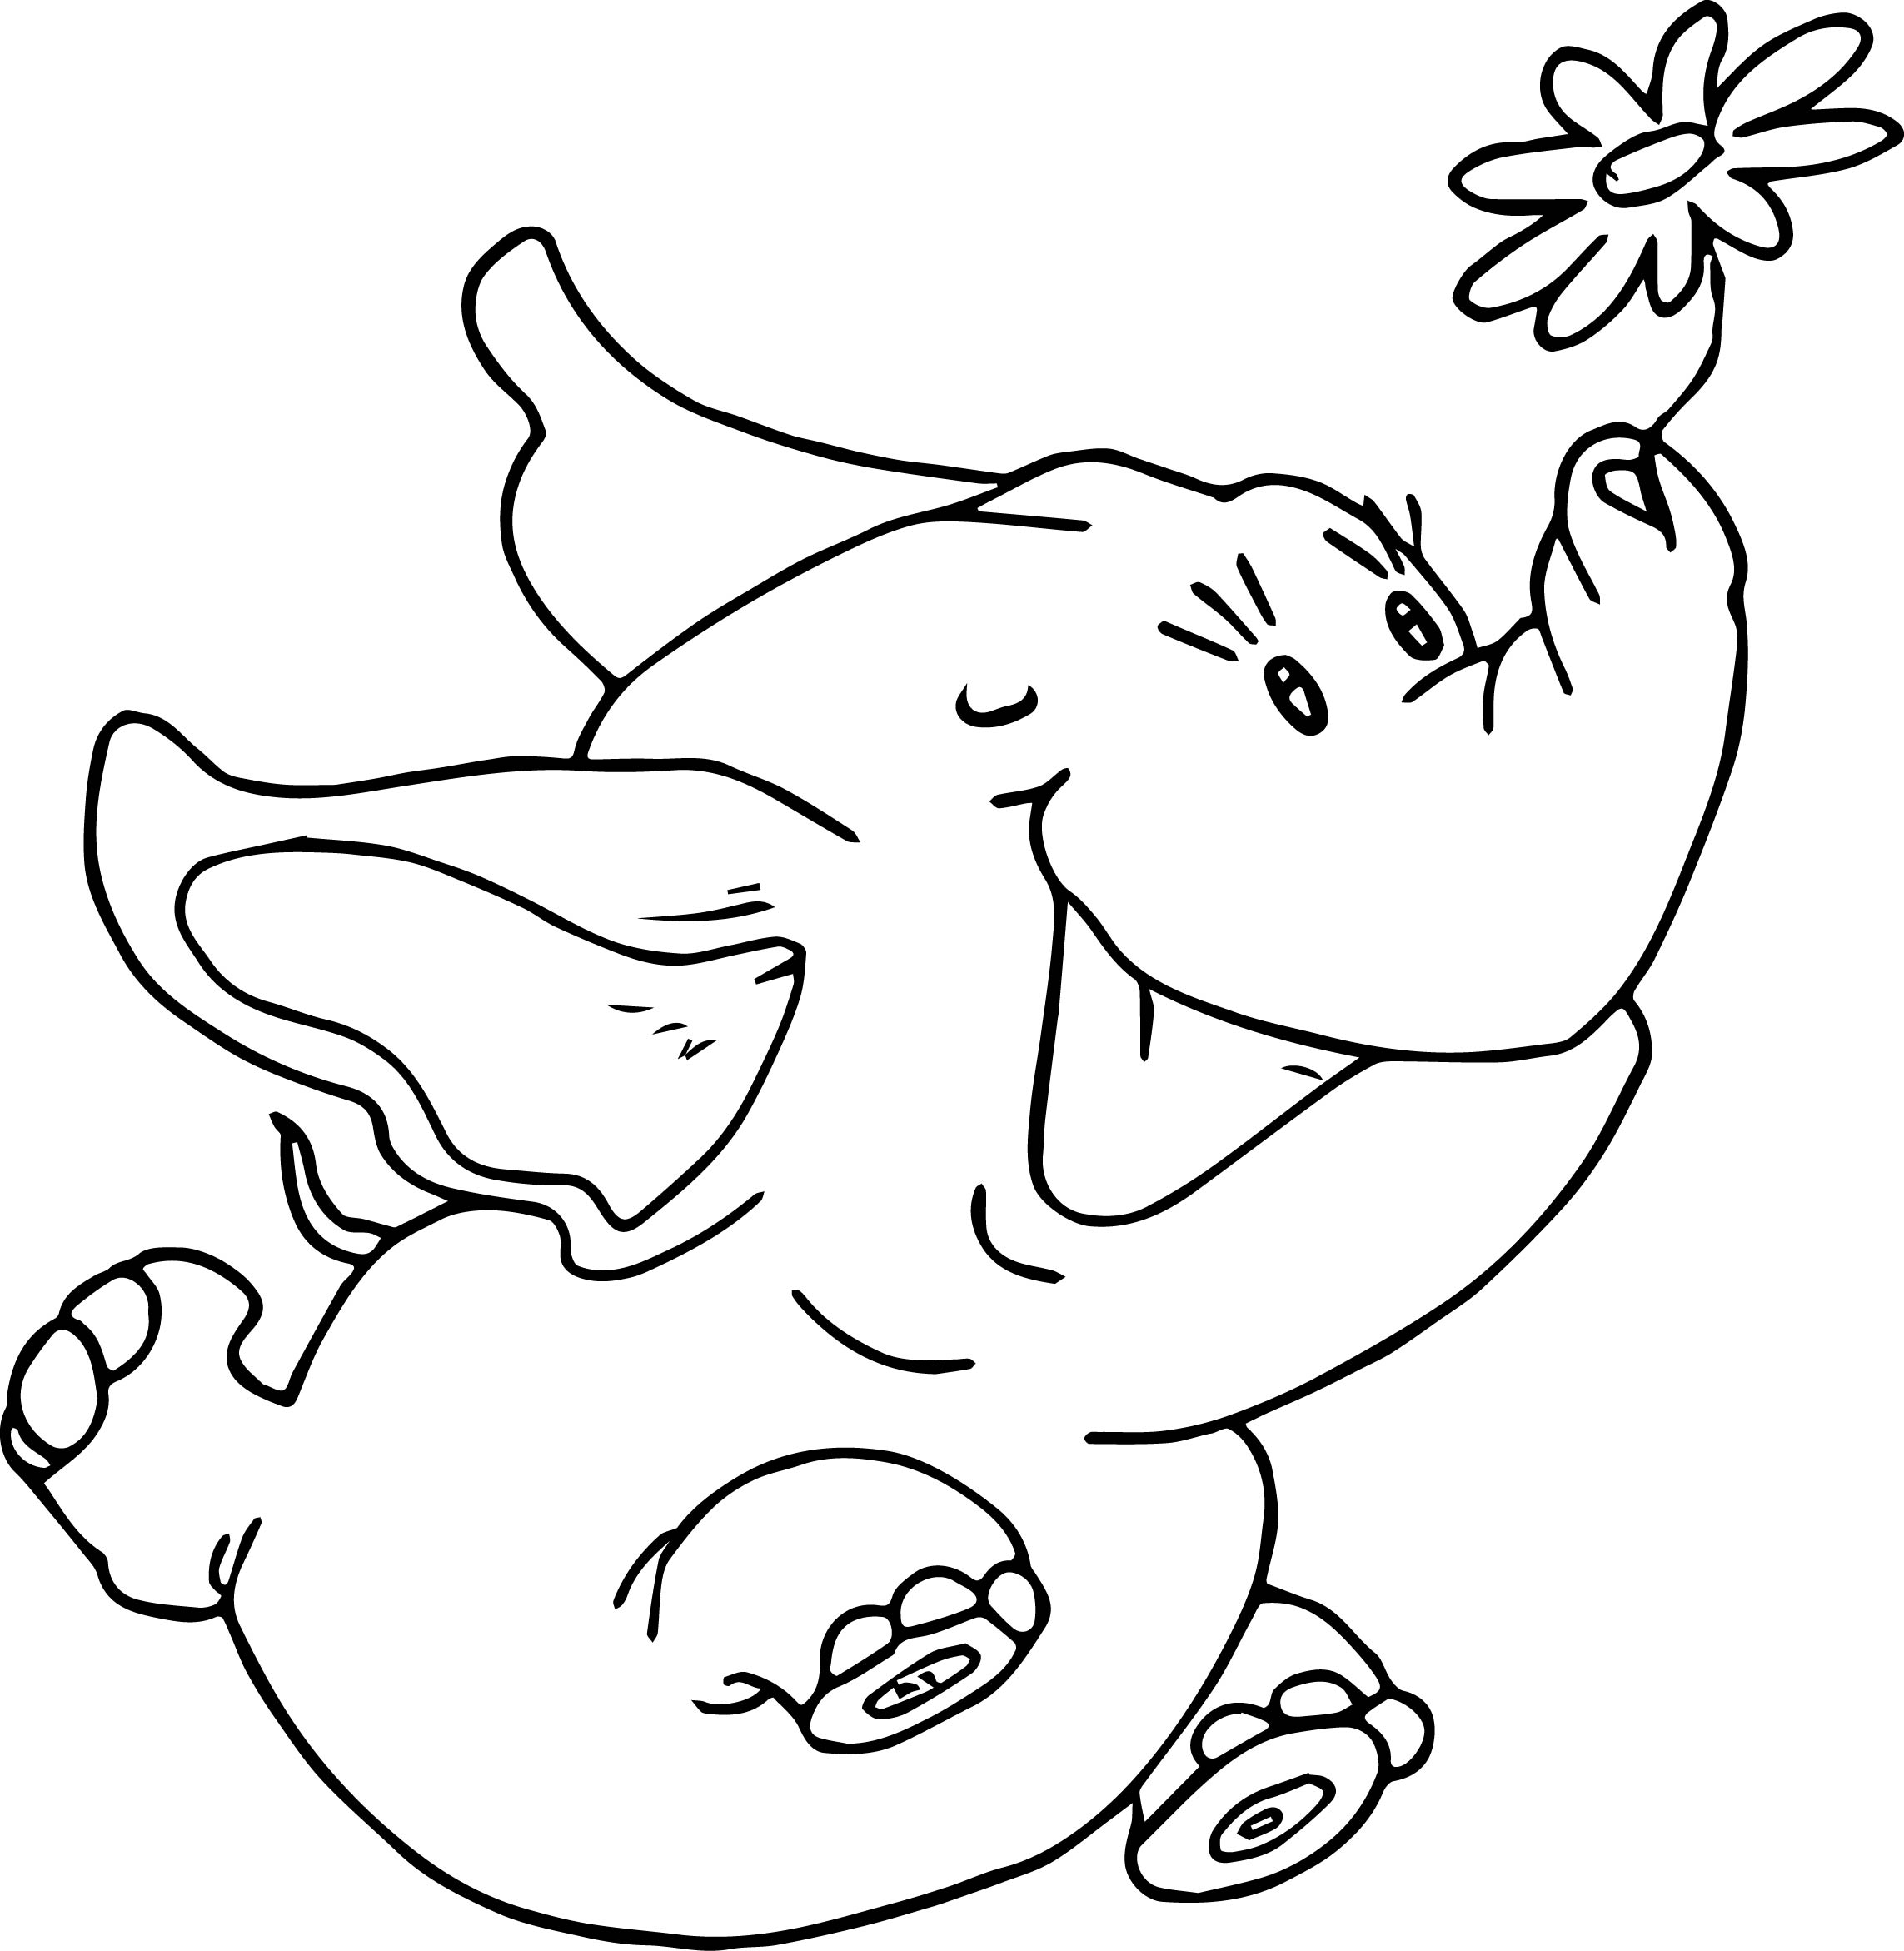 Running Elephant With Flower Coloring Page